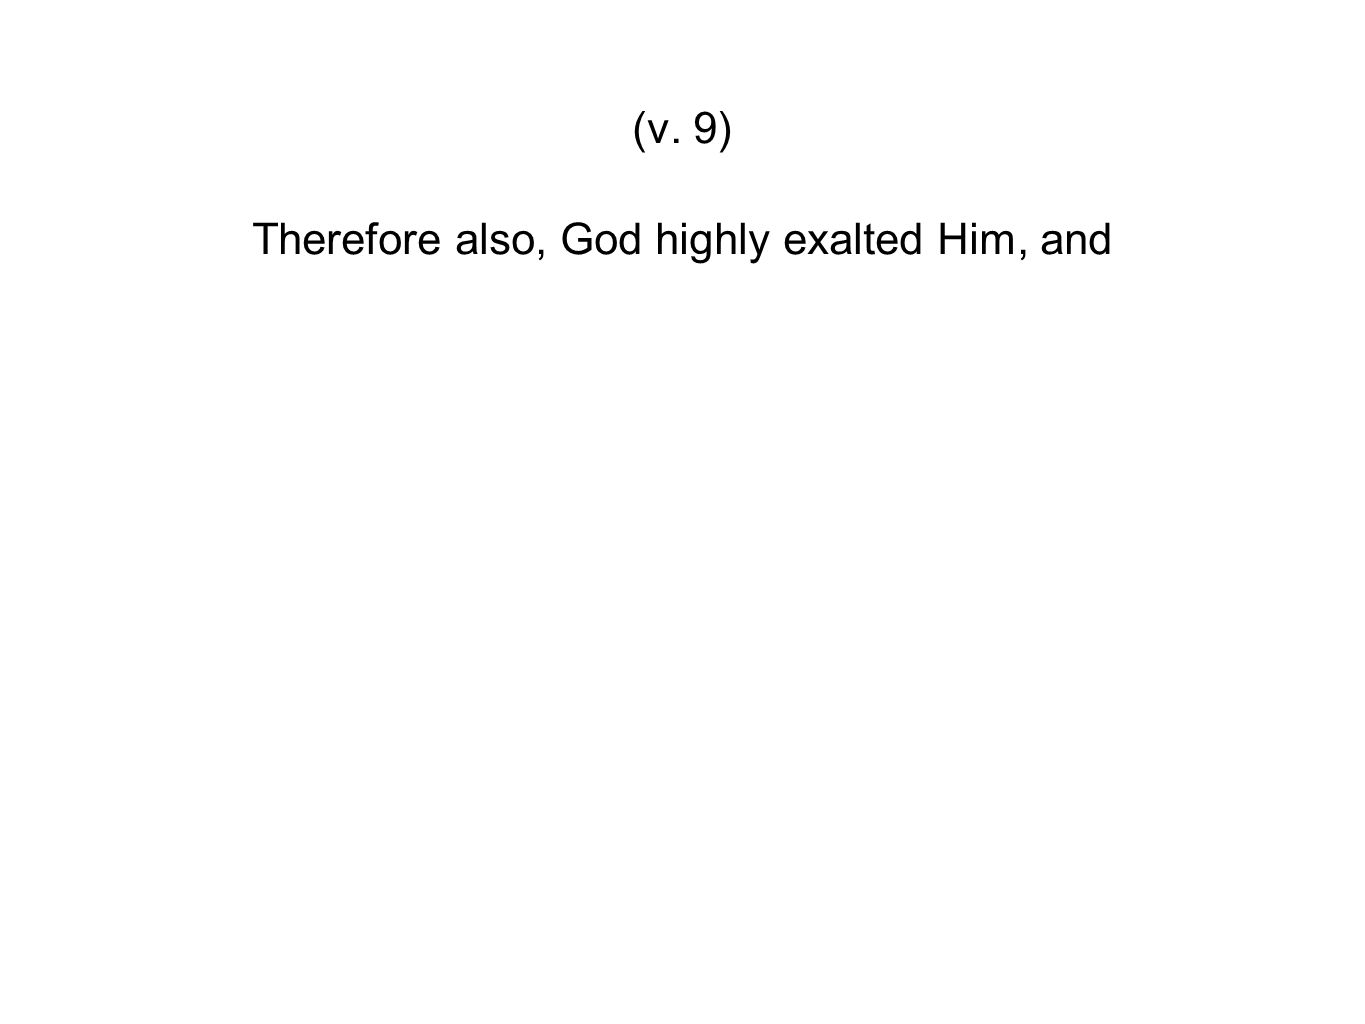 Therefore also, God highly exalted Him, and